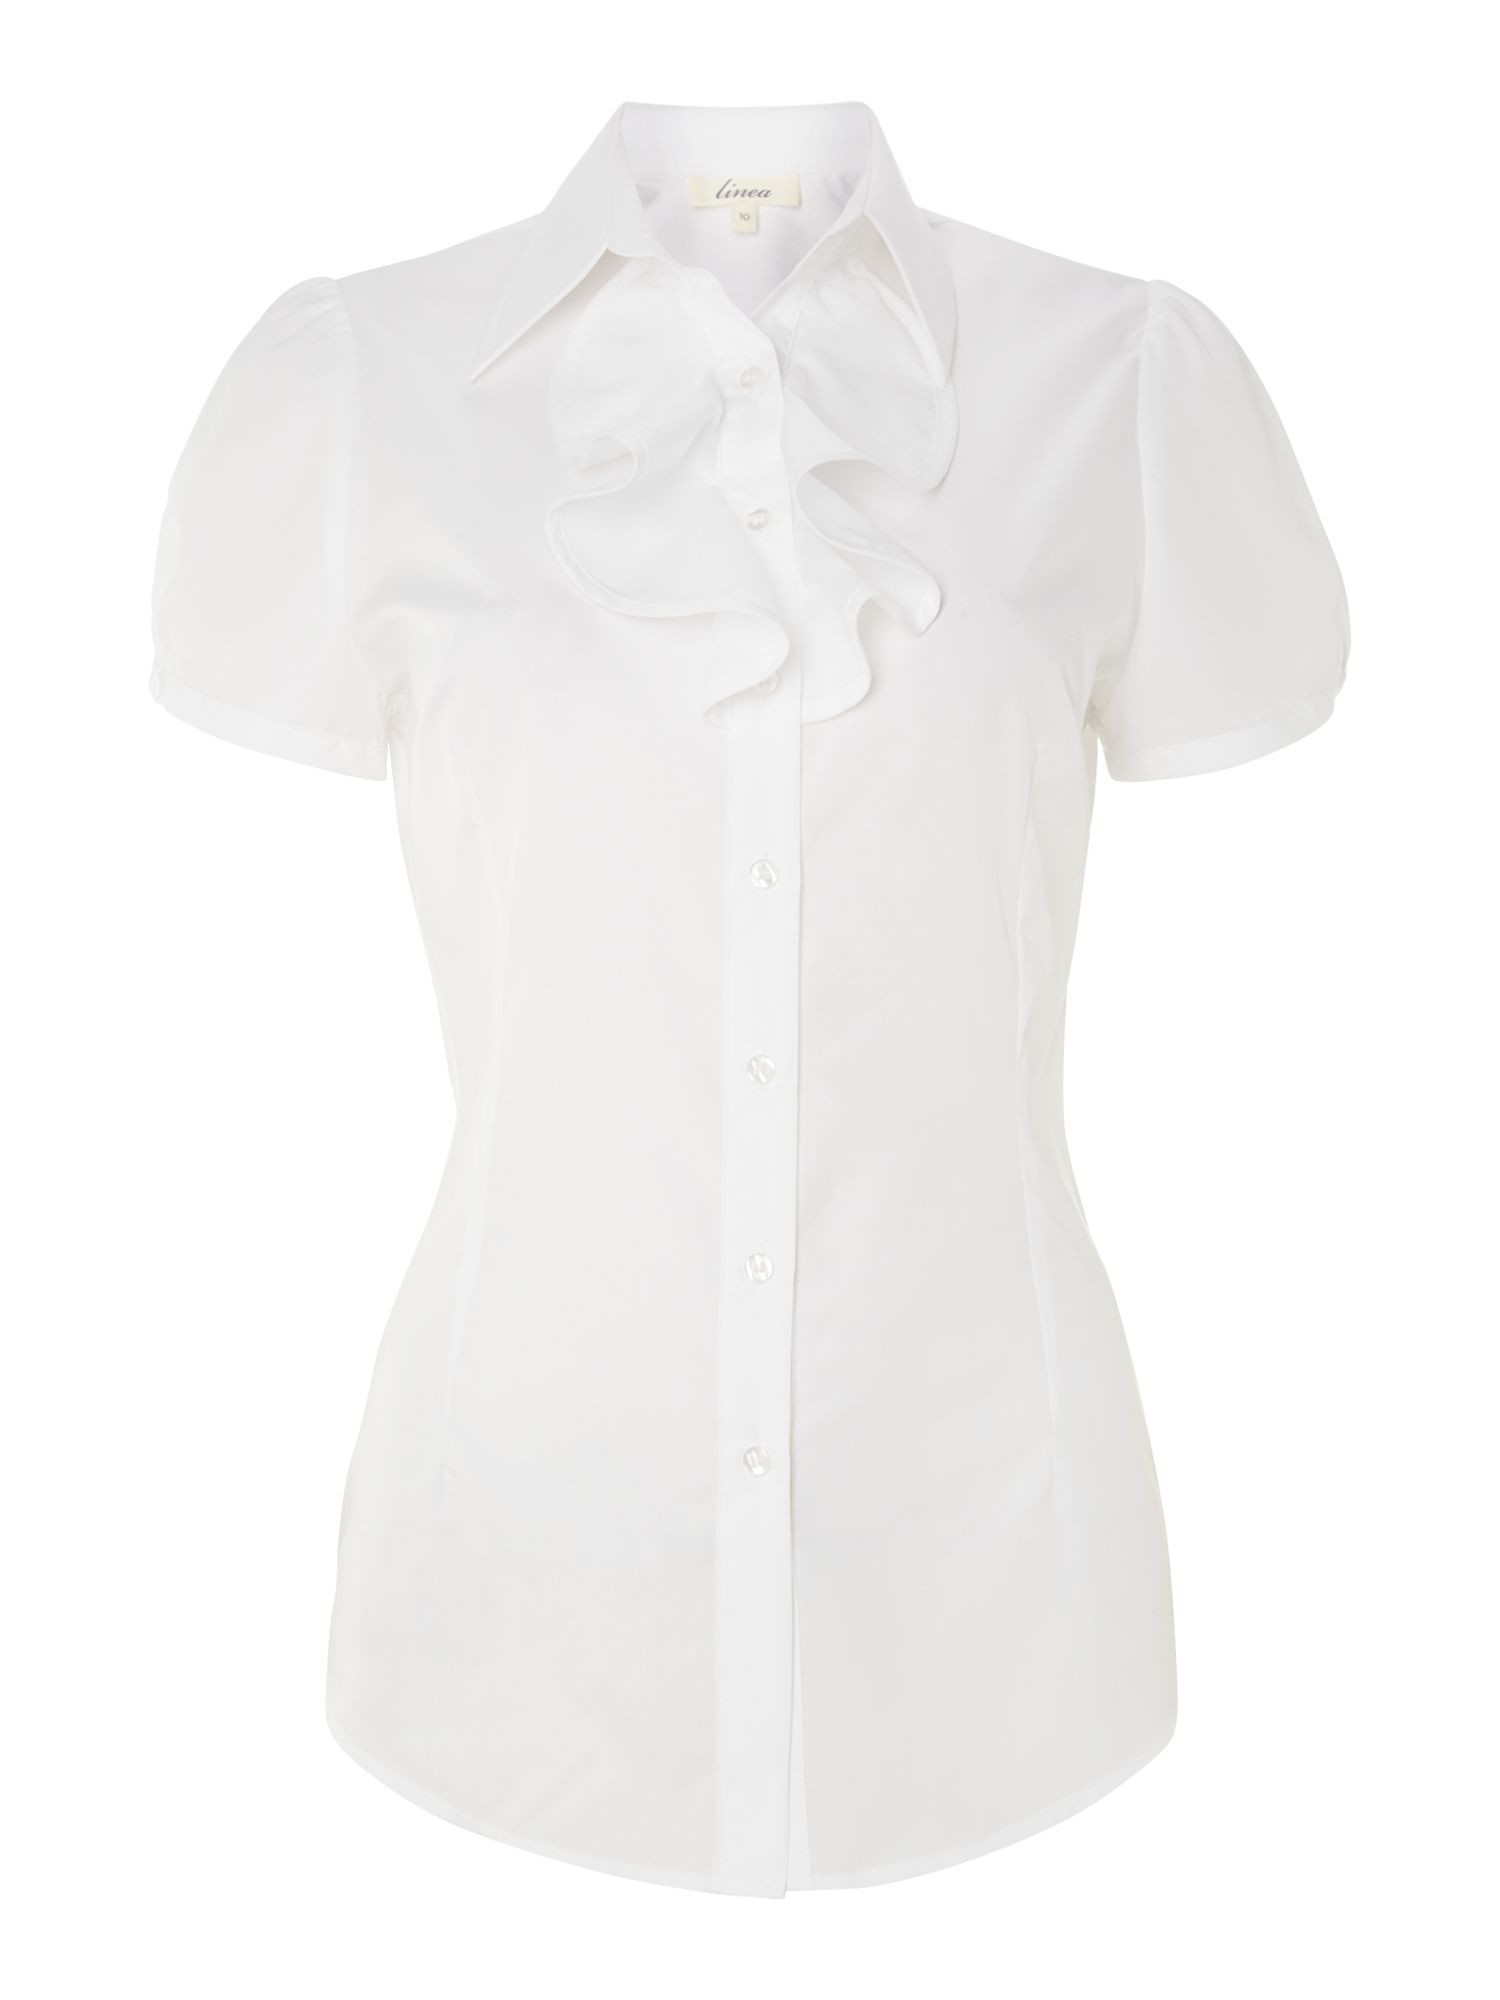 Slim fit frill detail work shirt